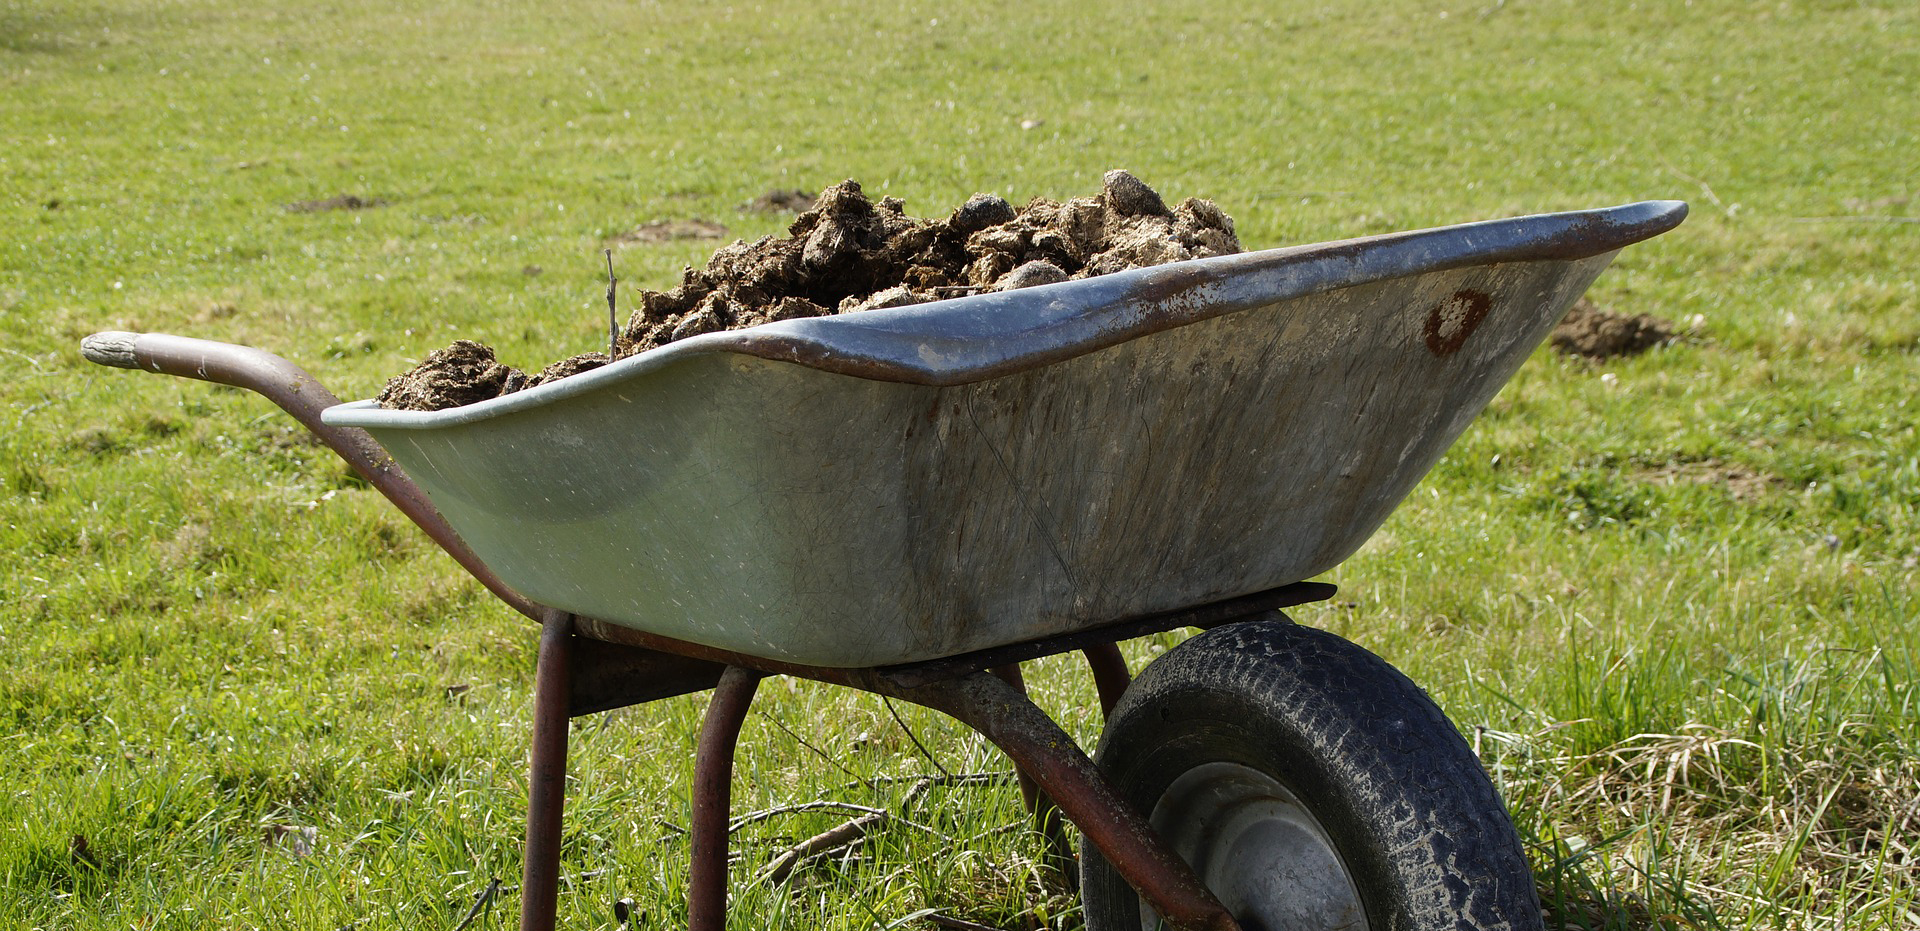 A wheelbarrow full of fertilizer on a green lawn